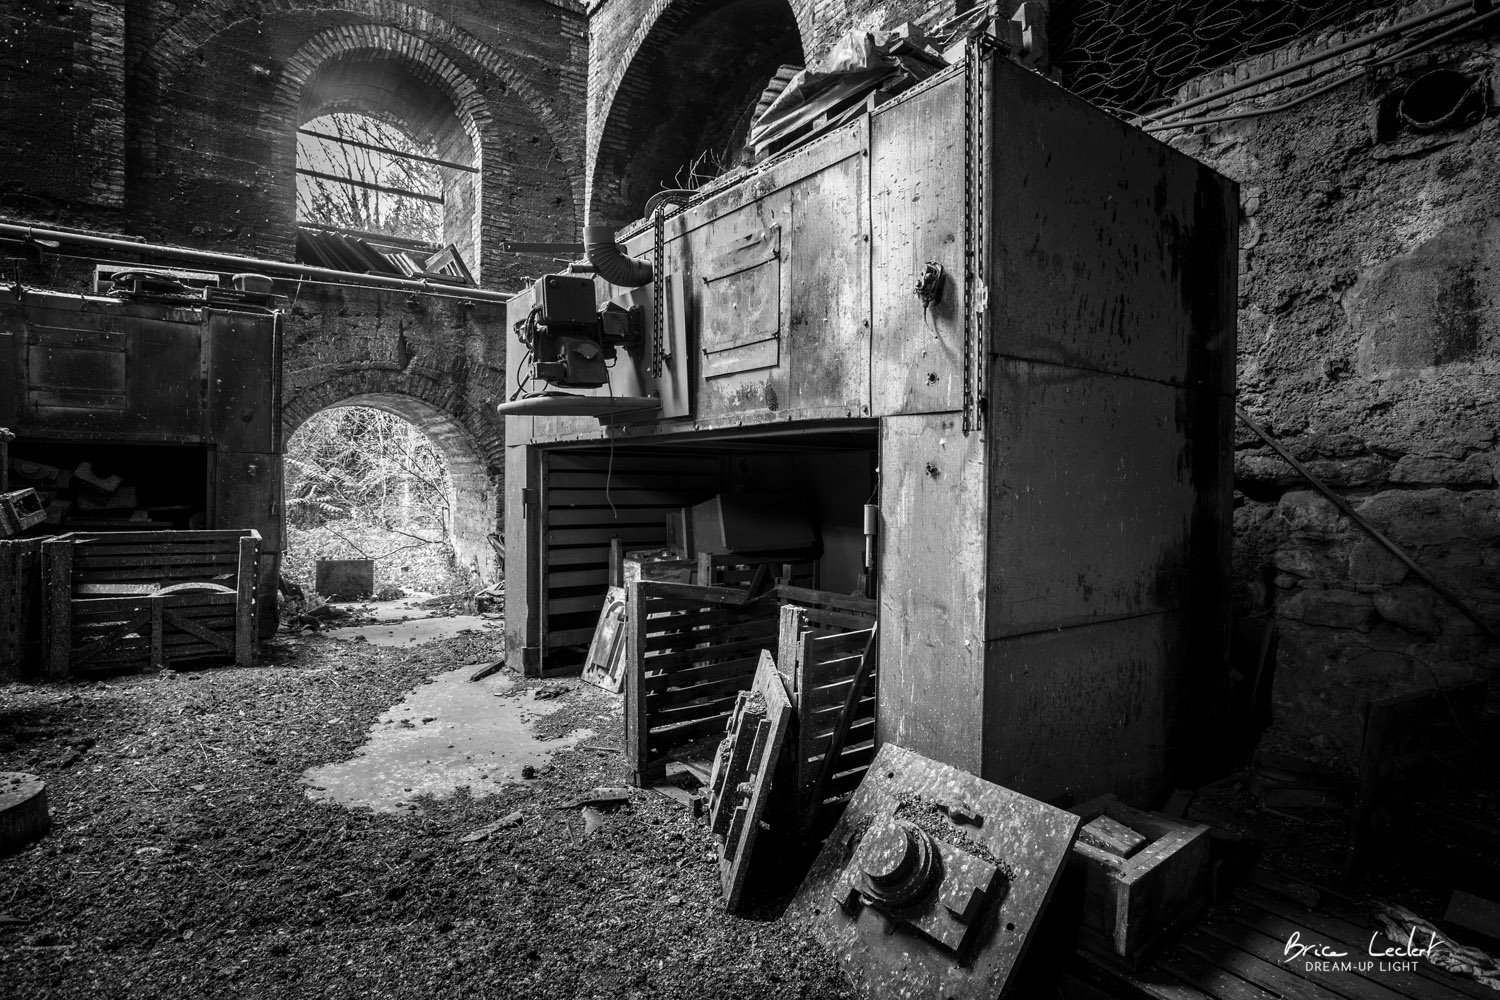 urbex-photo-brice-leclert-014